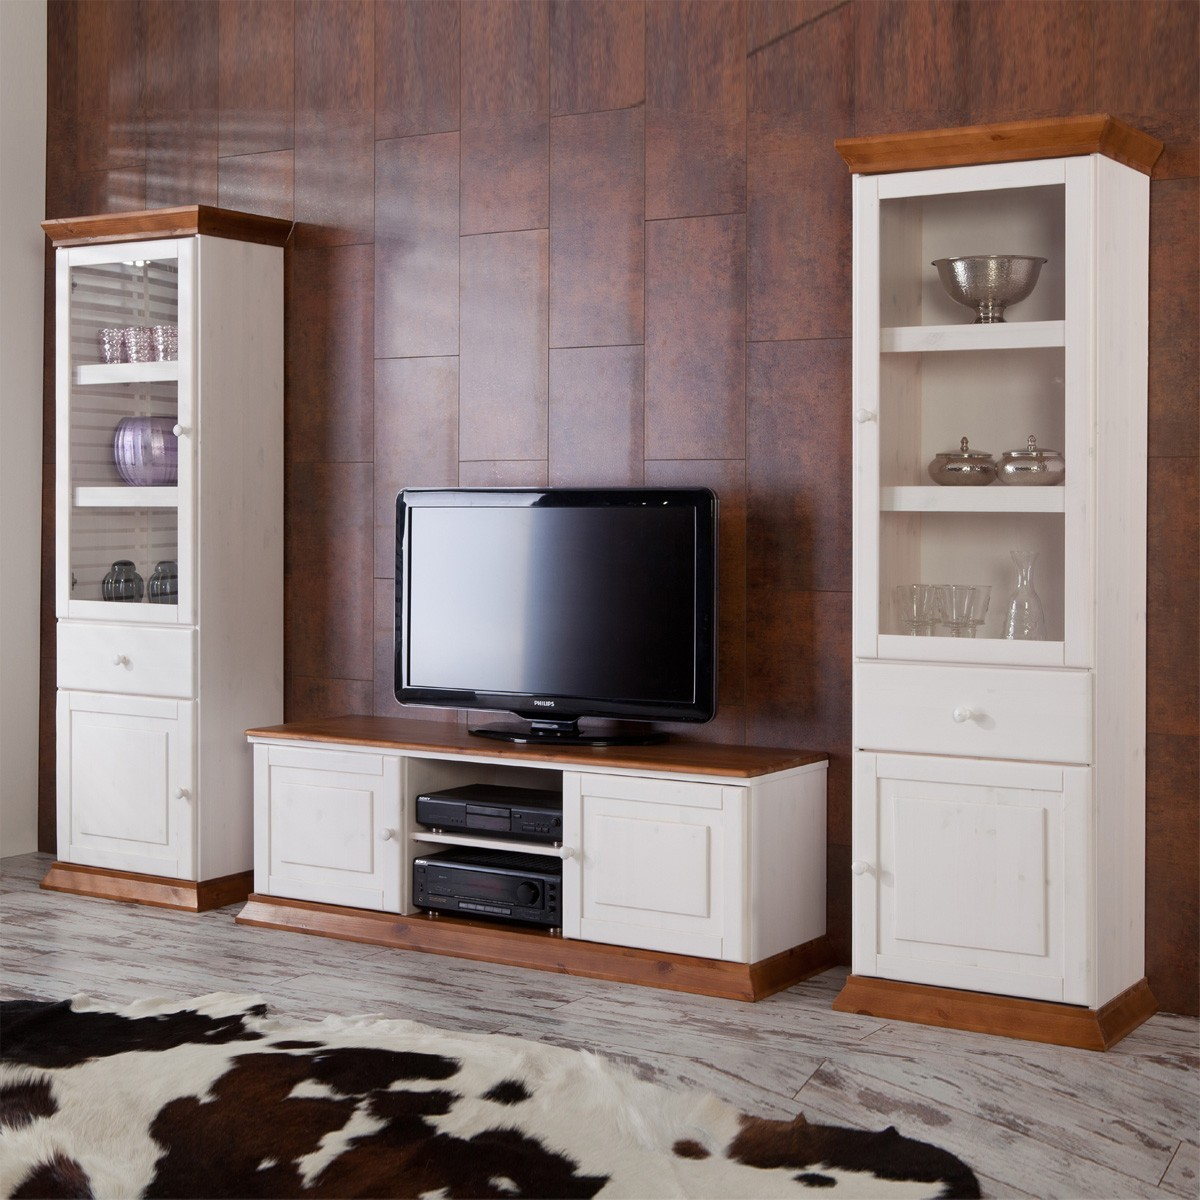 wohnwand landhaus wohnzimmer boston in wei cognac. Black Bedroom Furniture Sets. Home Design Ideas